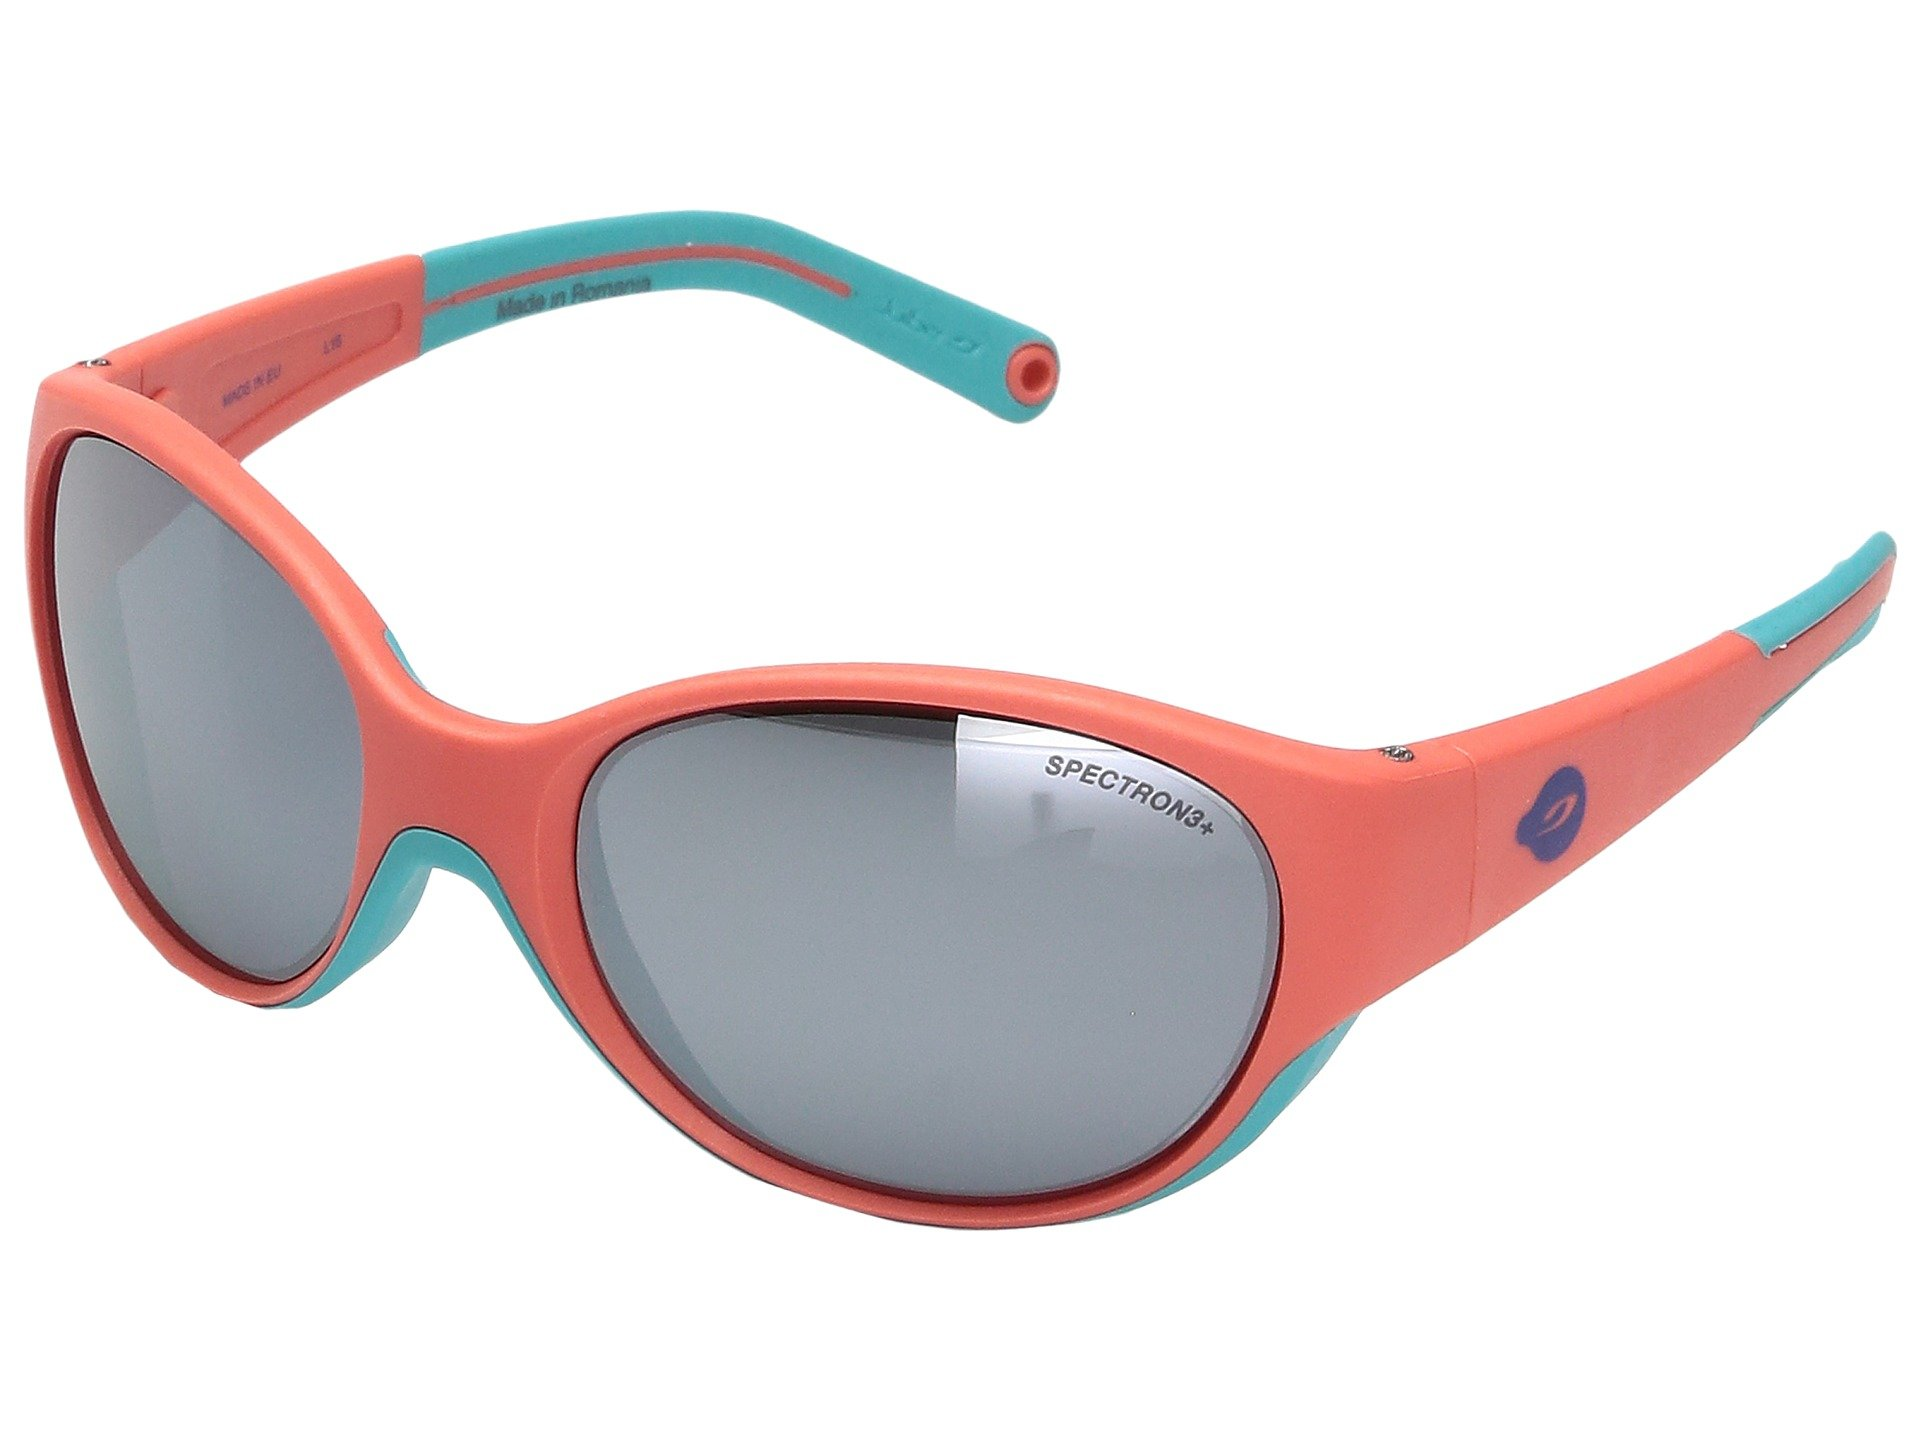 kids sunglasses shipped free at zapposcoral turquoise with spectron 3 lens